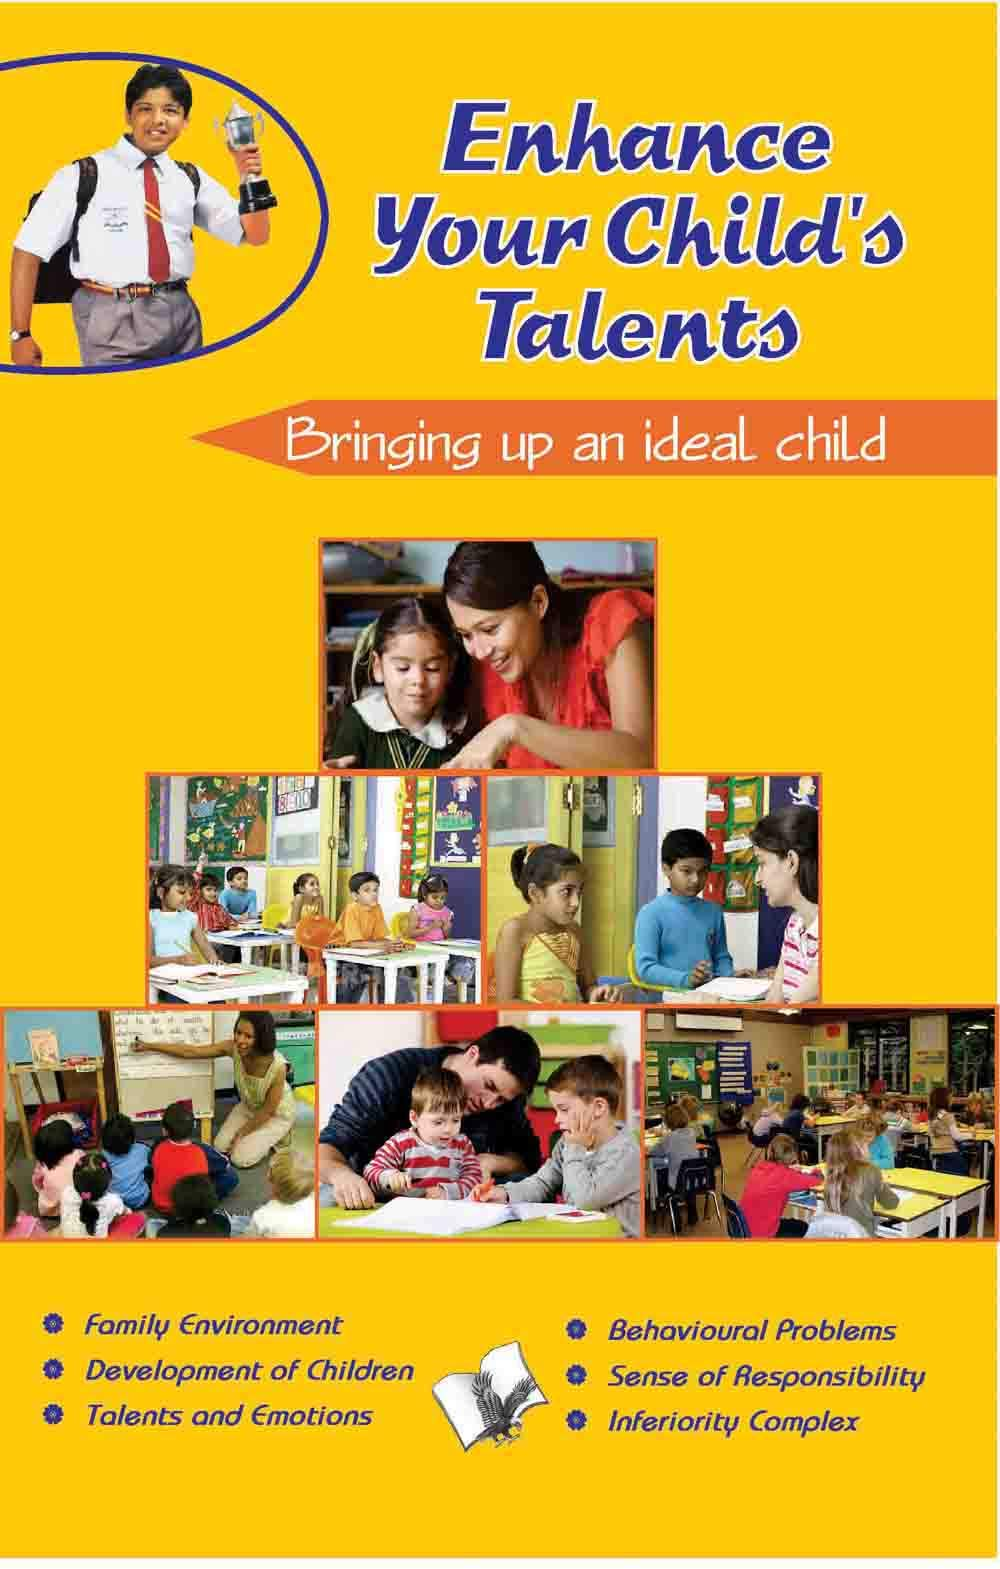 Enhance Your Child's Talents: Bringing Up an Ideal Child